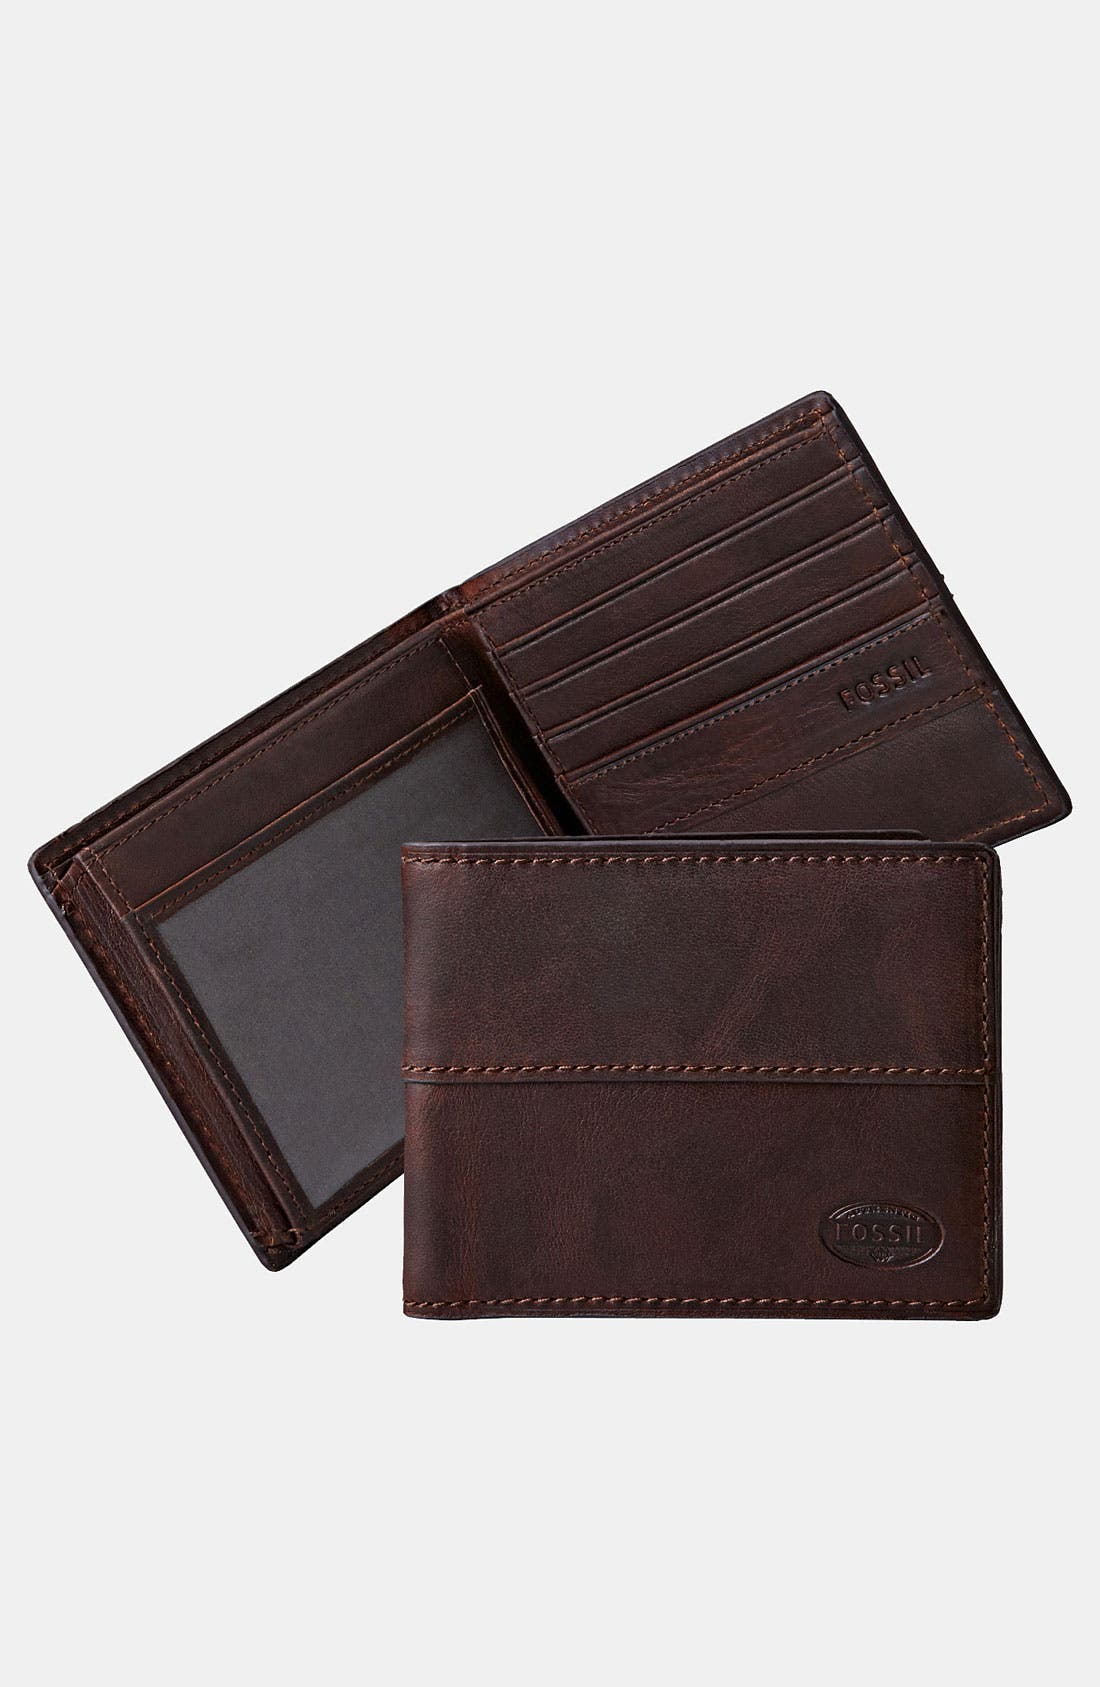 Main Image - Fossil 'Dillon' Traveler Wallet